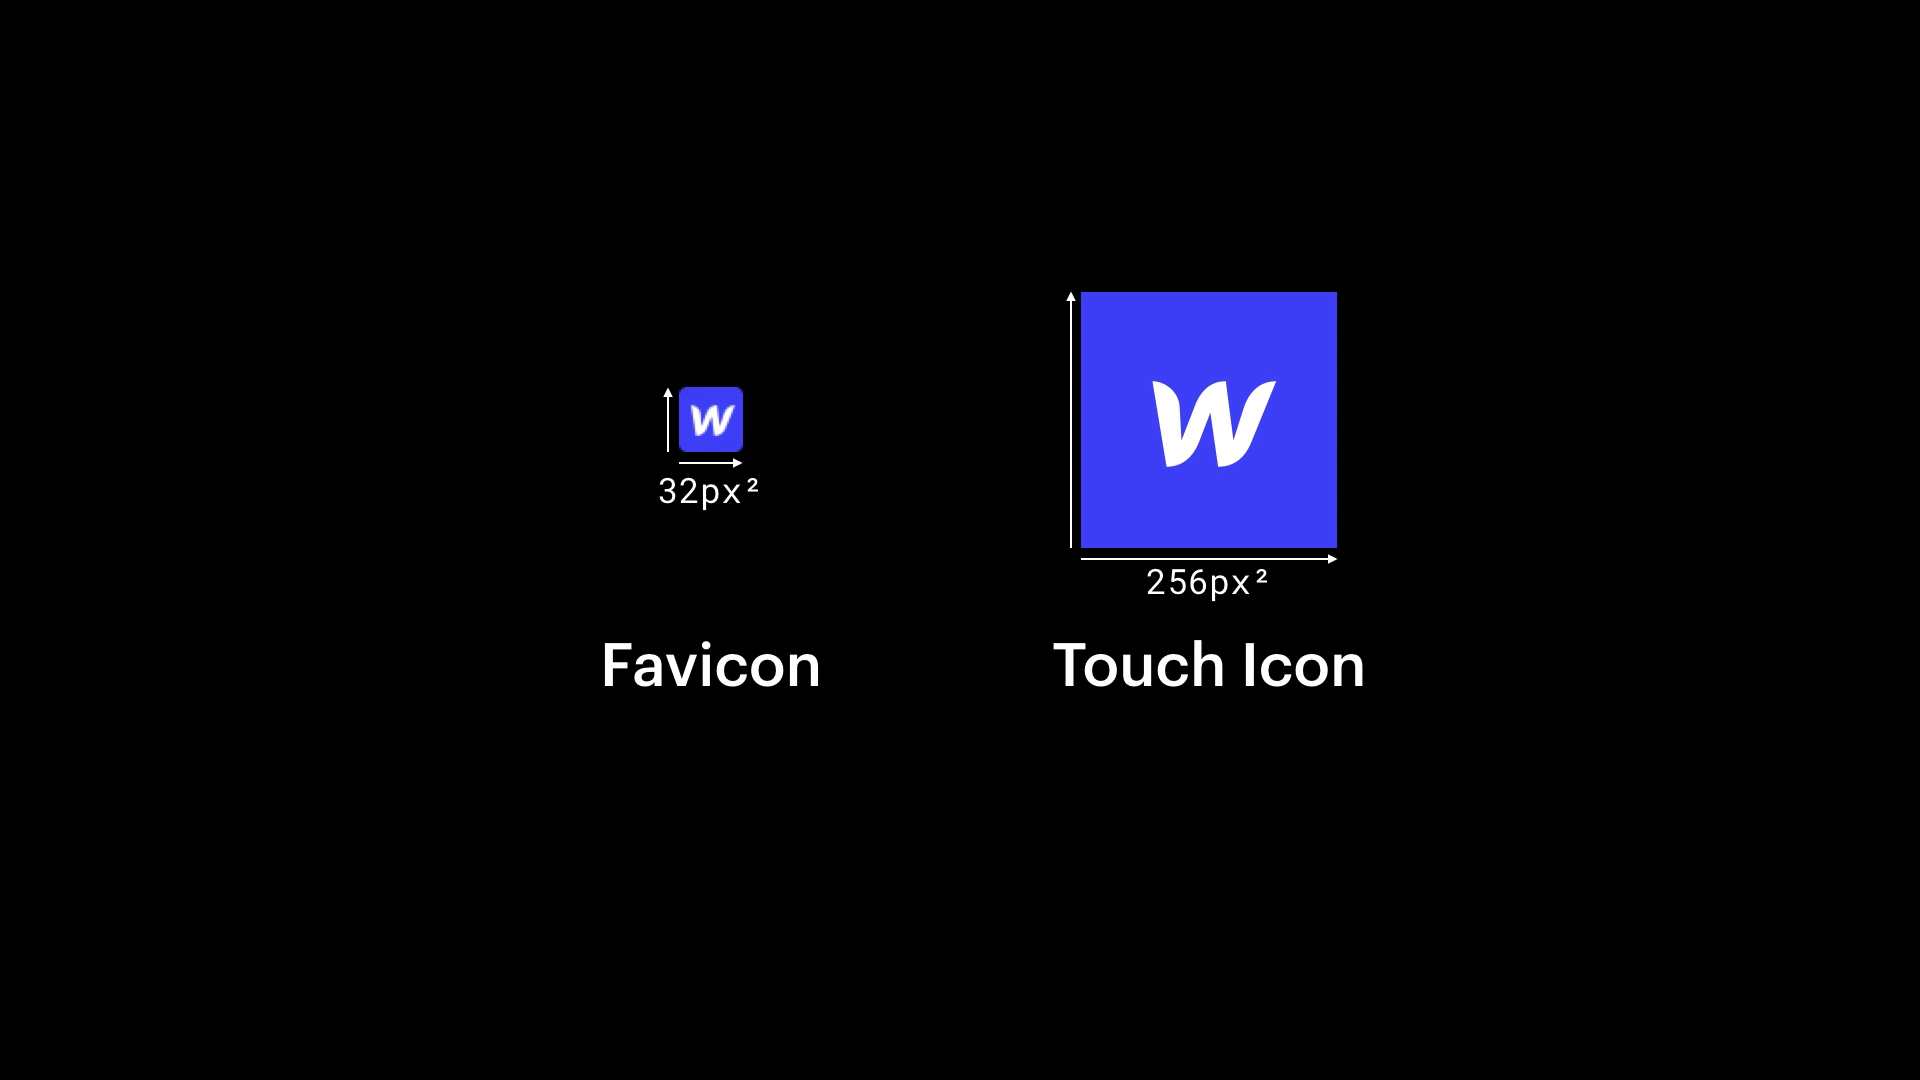 Webflow Favicon and Touch icon sizes